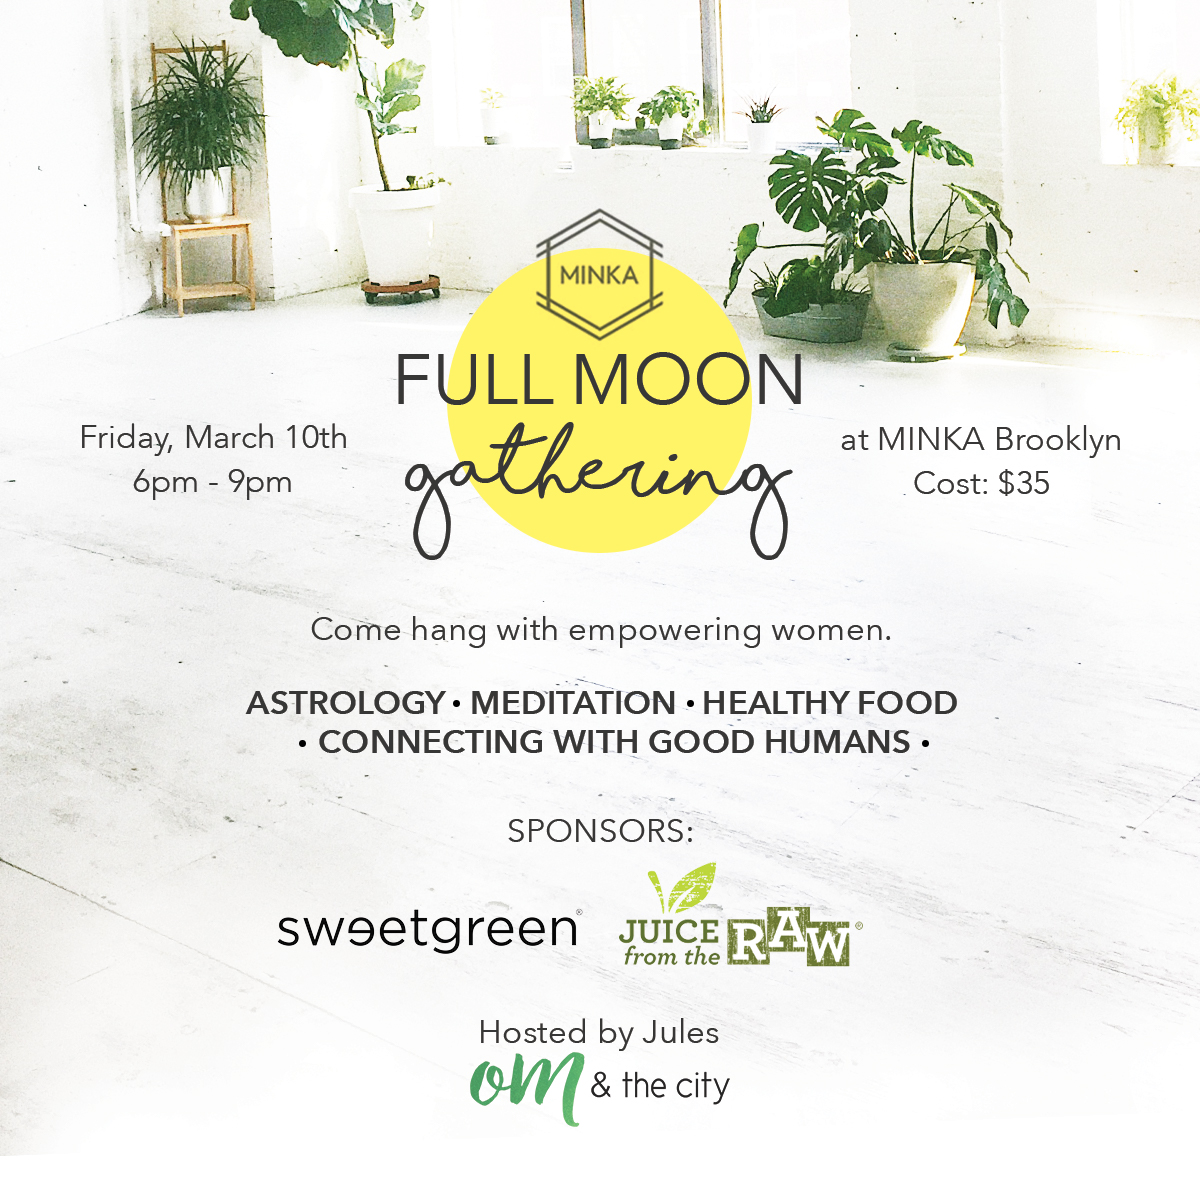 FullMoonParty_Invite_draft_final